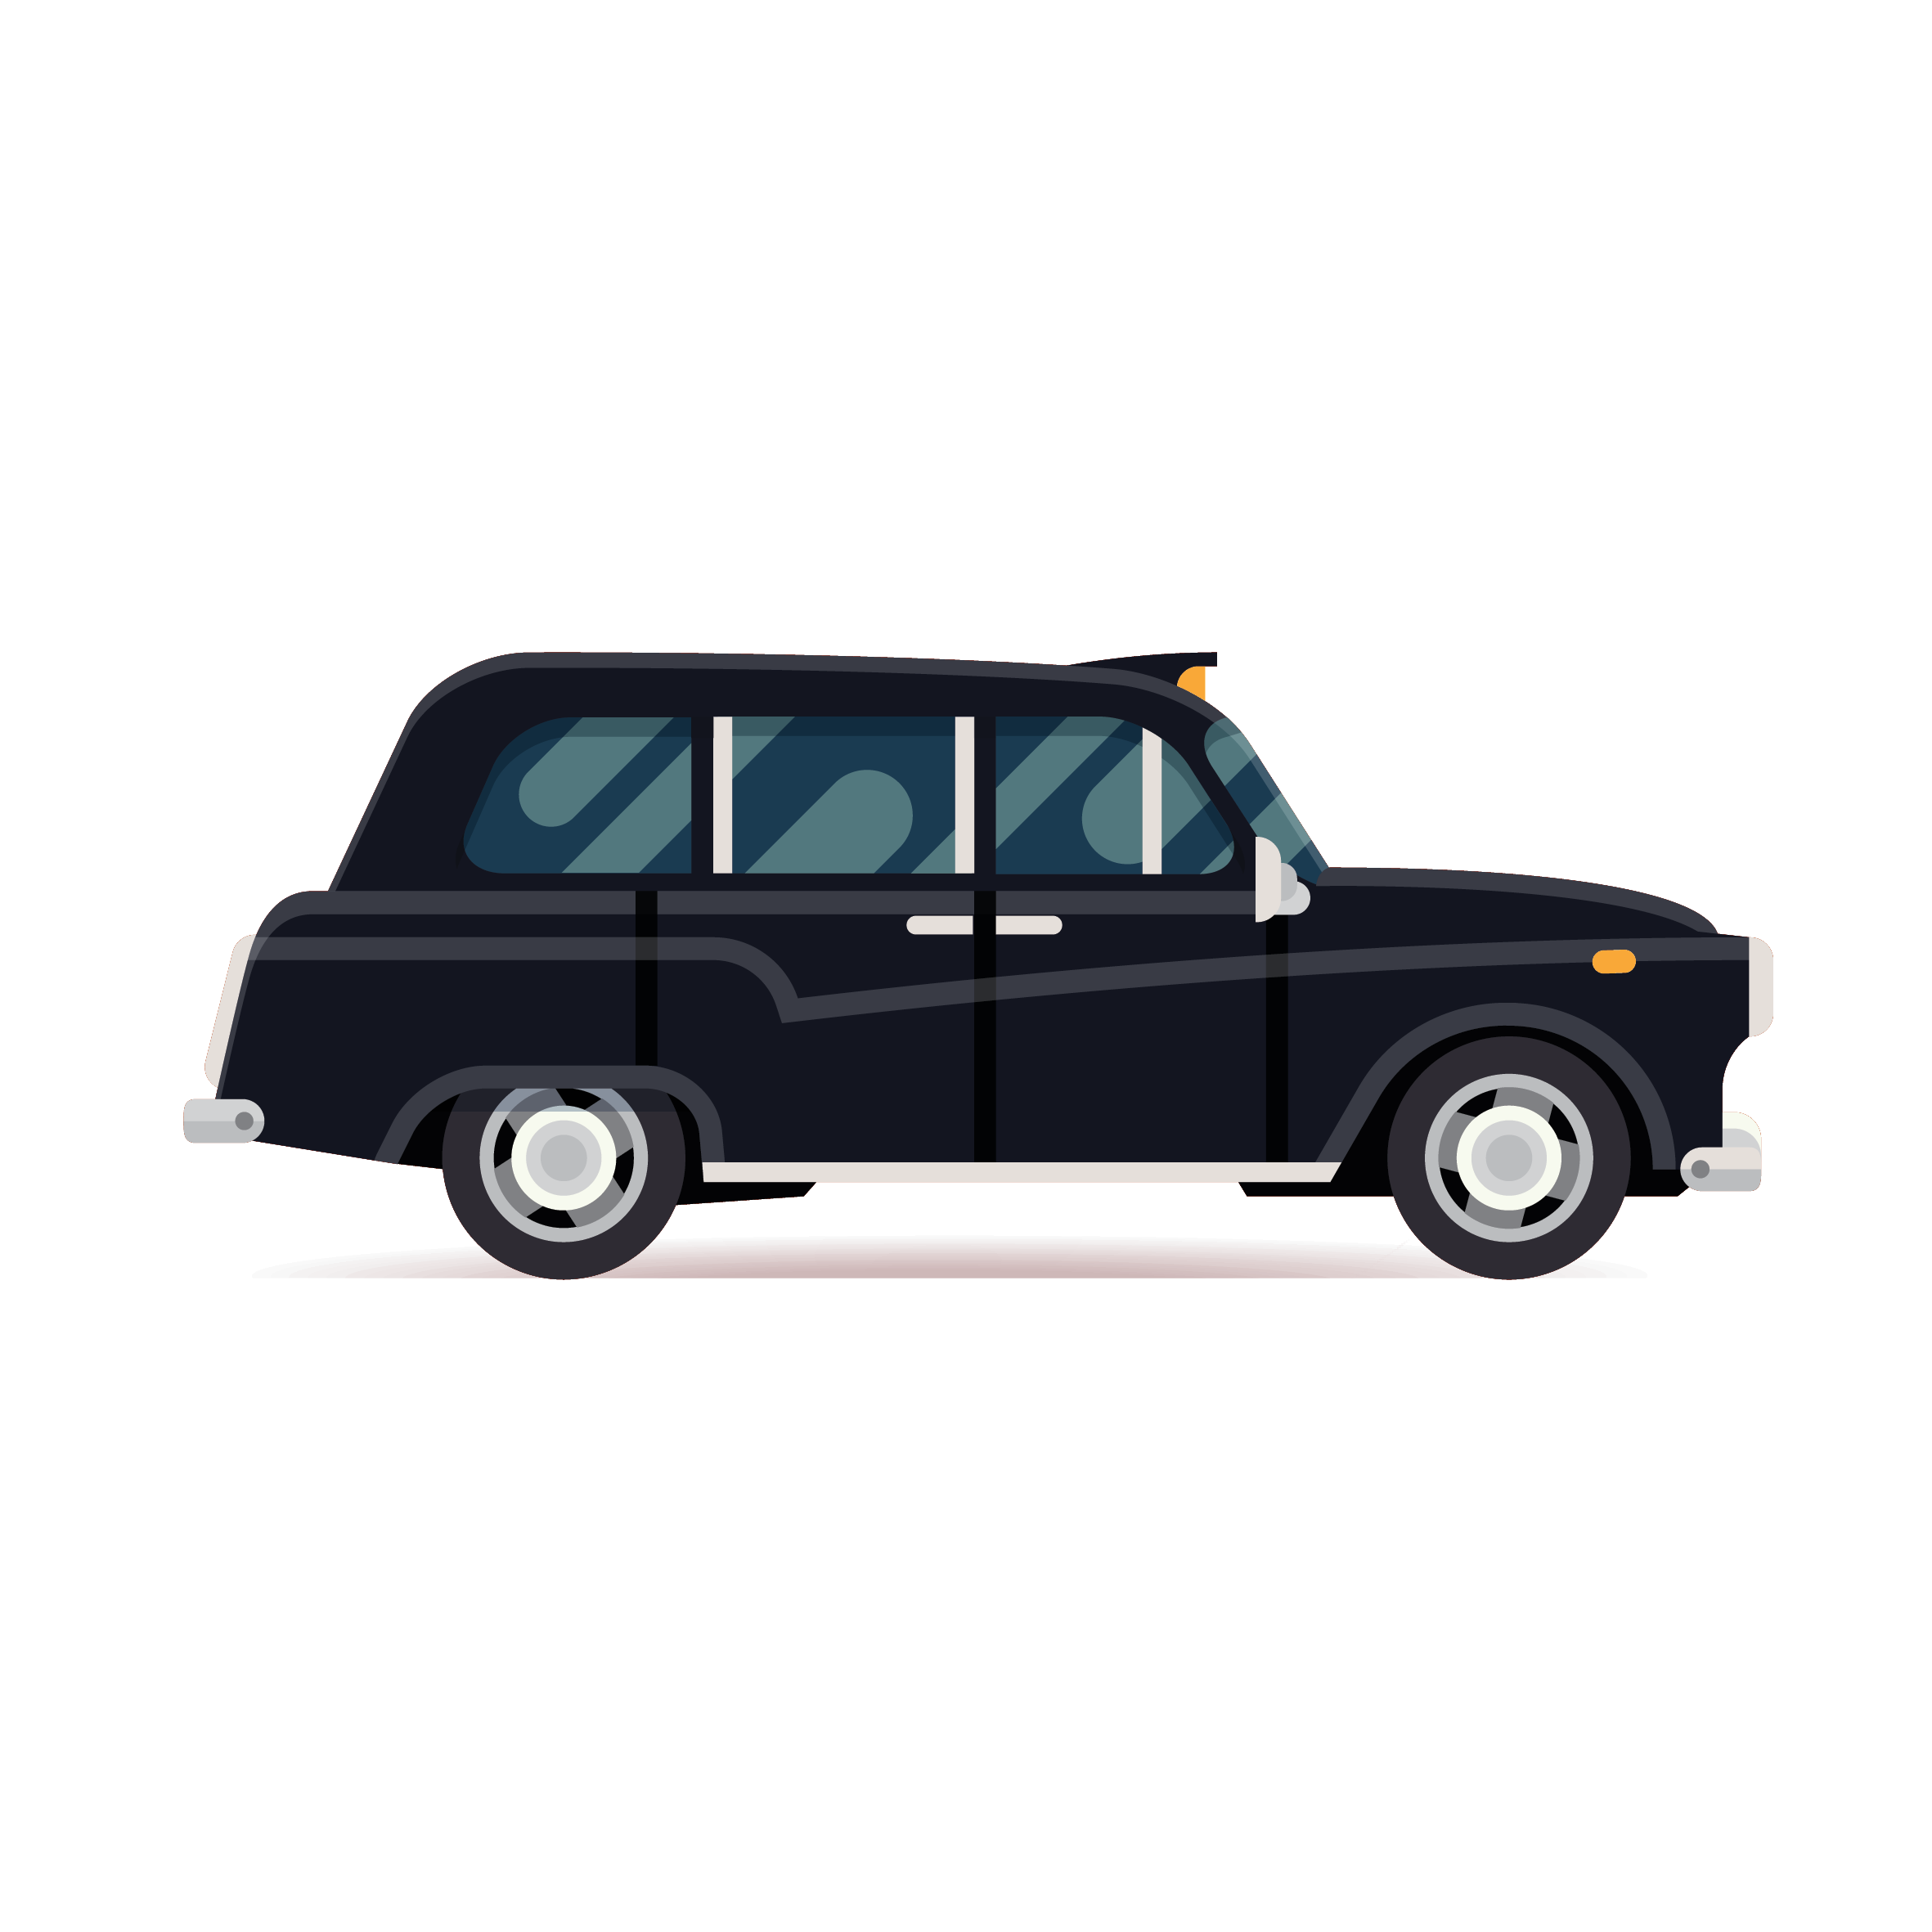 Working with Black Cabs is great as we are able to offer the passengers a unique British service.